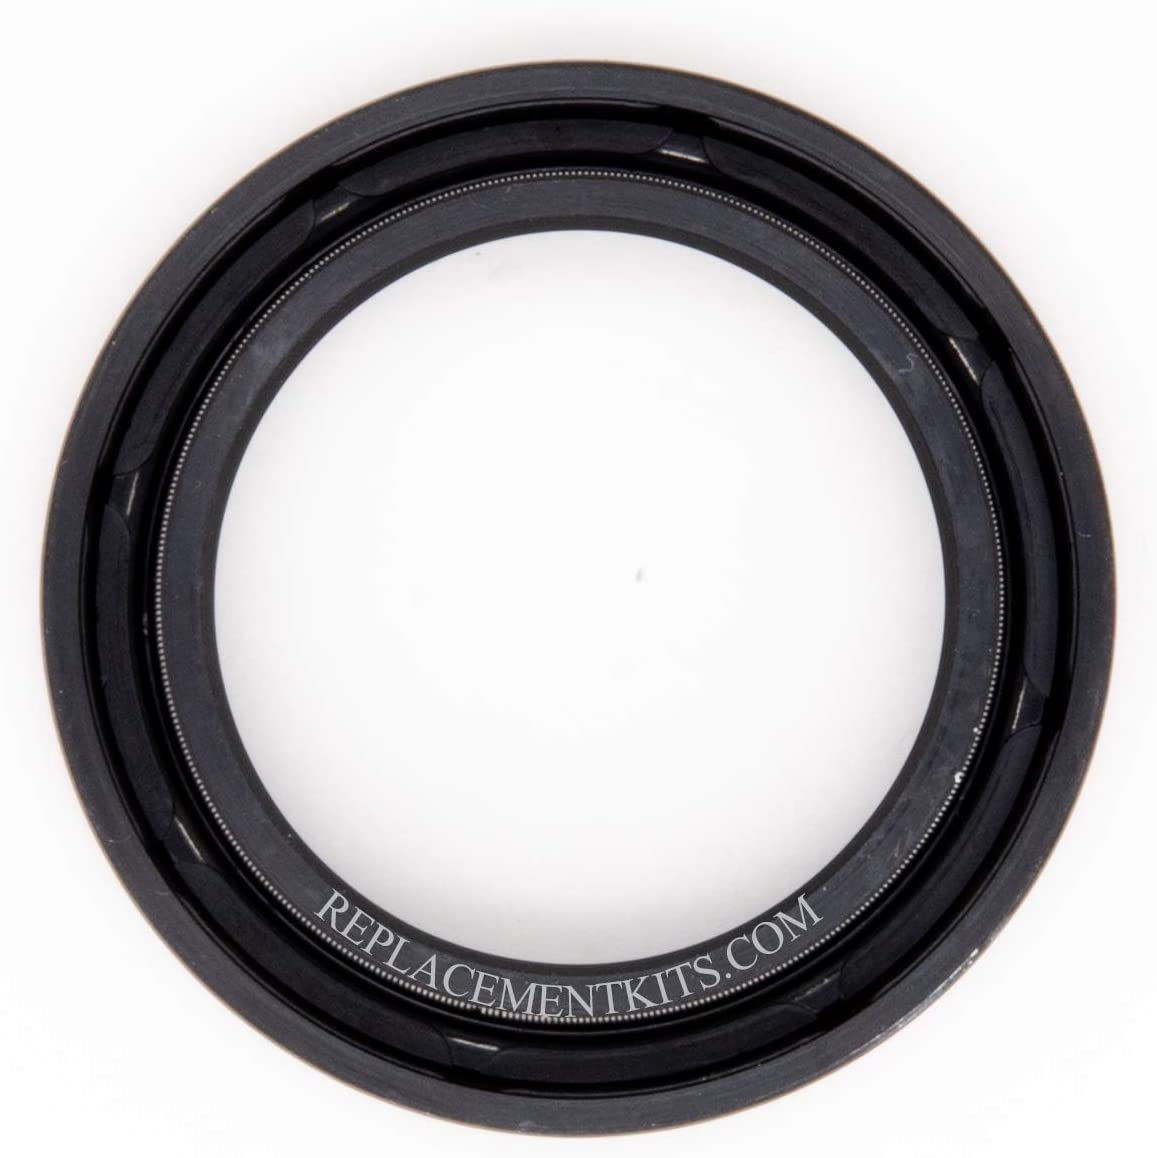 REPLACEMENTKITS.COM - Gear Case Cover Seal Replaces Whirlpool 3349985 -